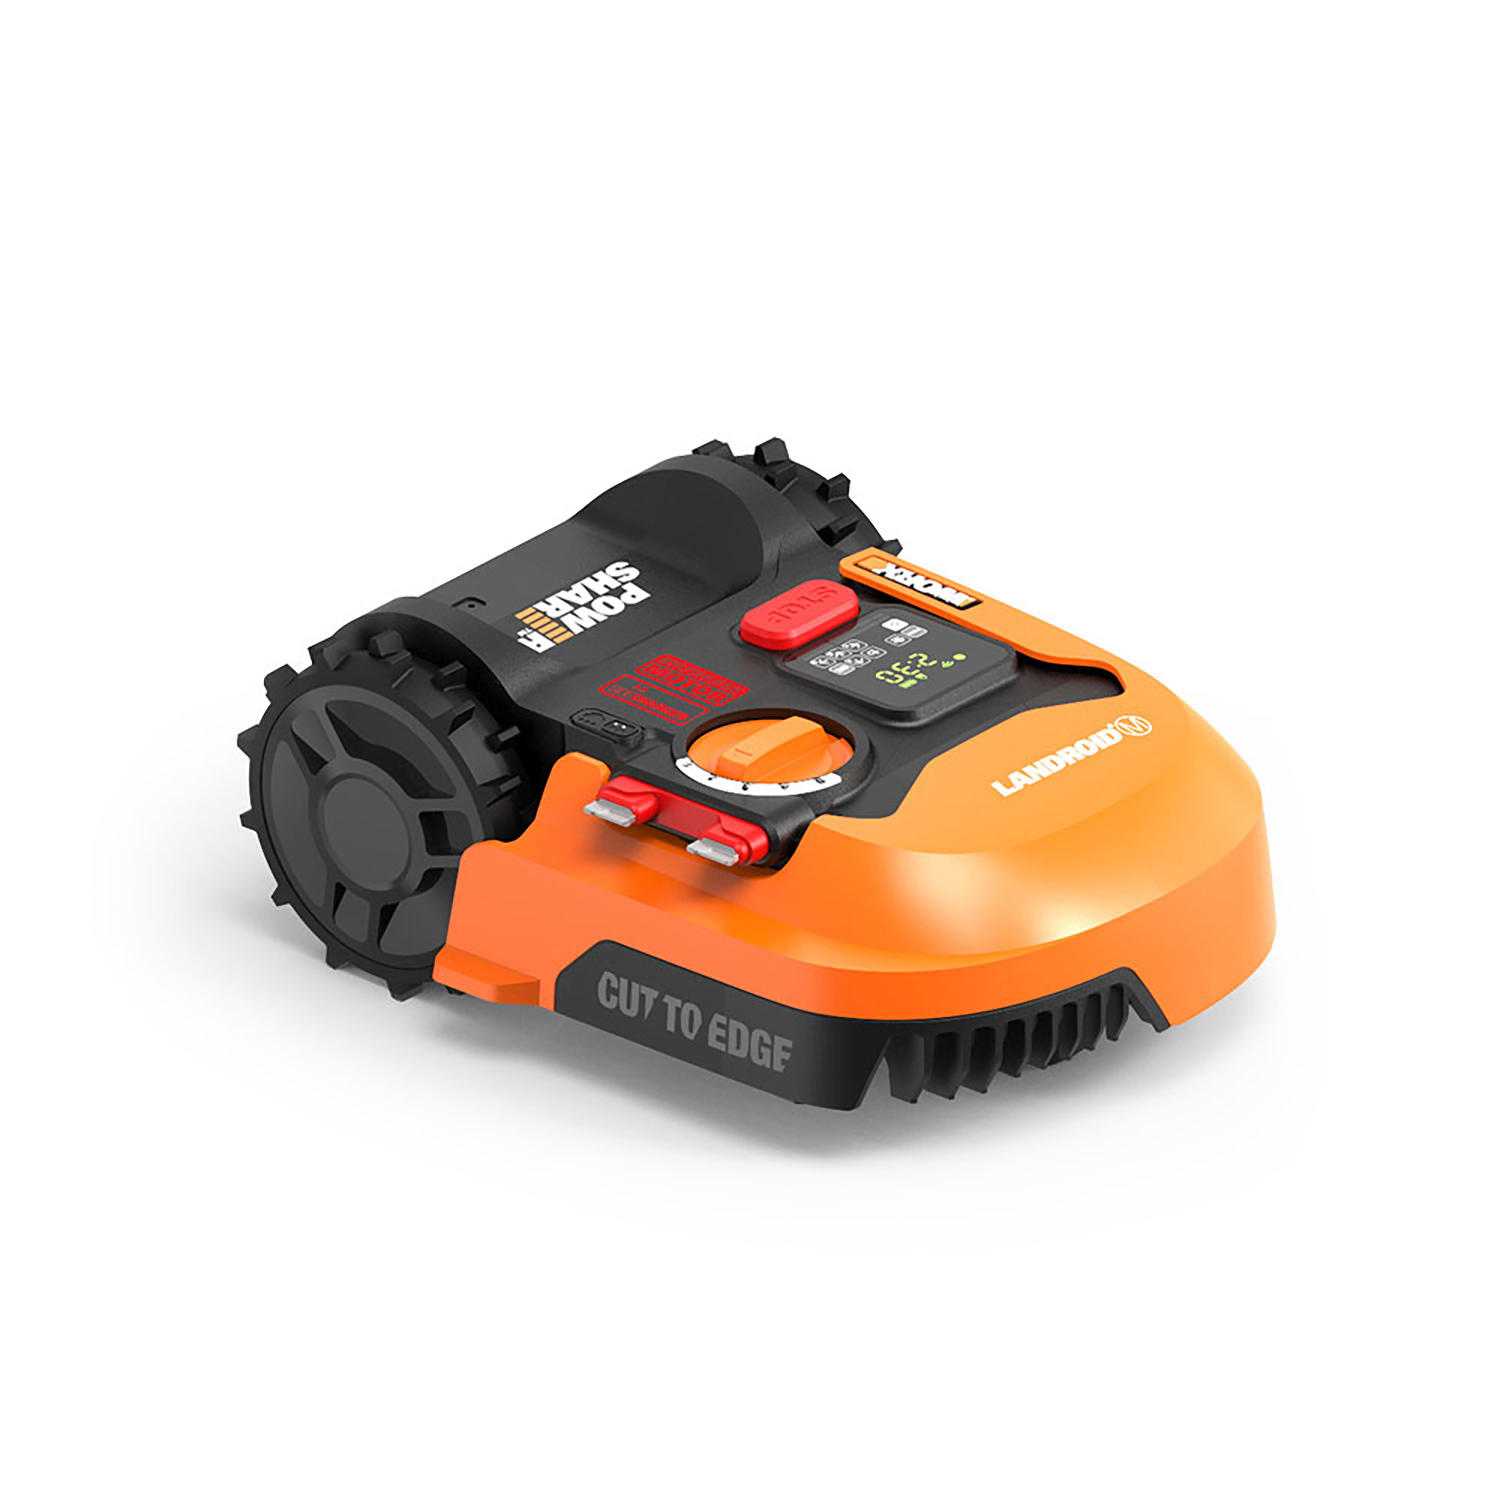 Worx WO7080 Landroid M 20V Cordless Robotic Lawn Mower with Anti Collision Accessory